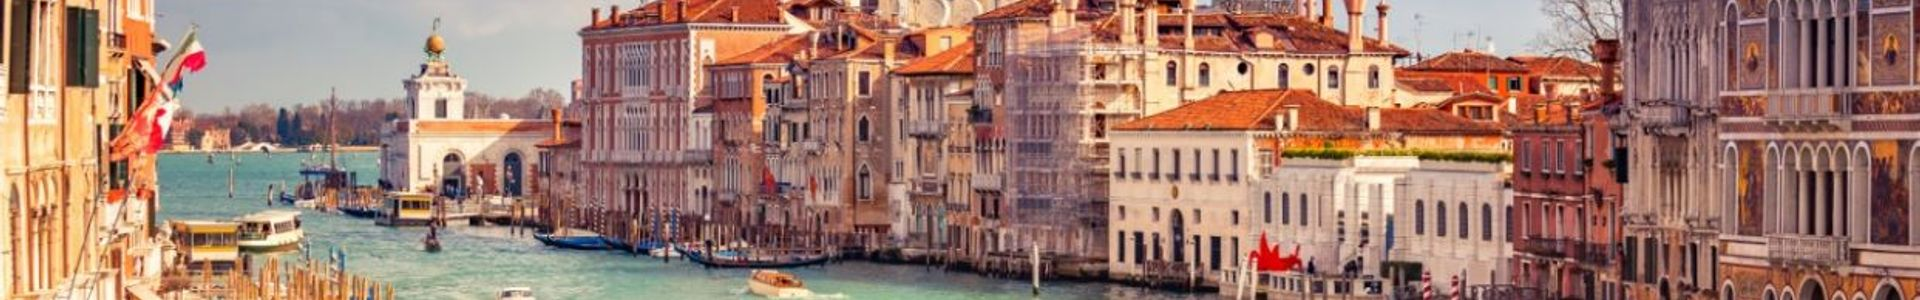 grand canal, venise - italie (c)gettyimages.jpg